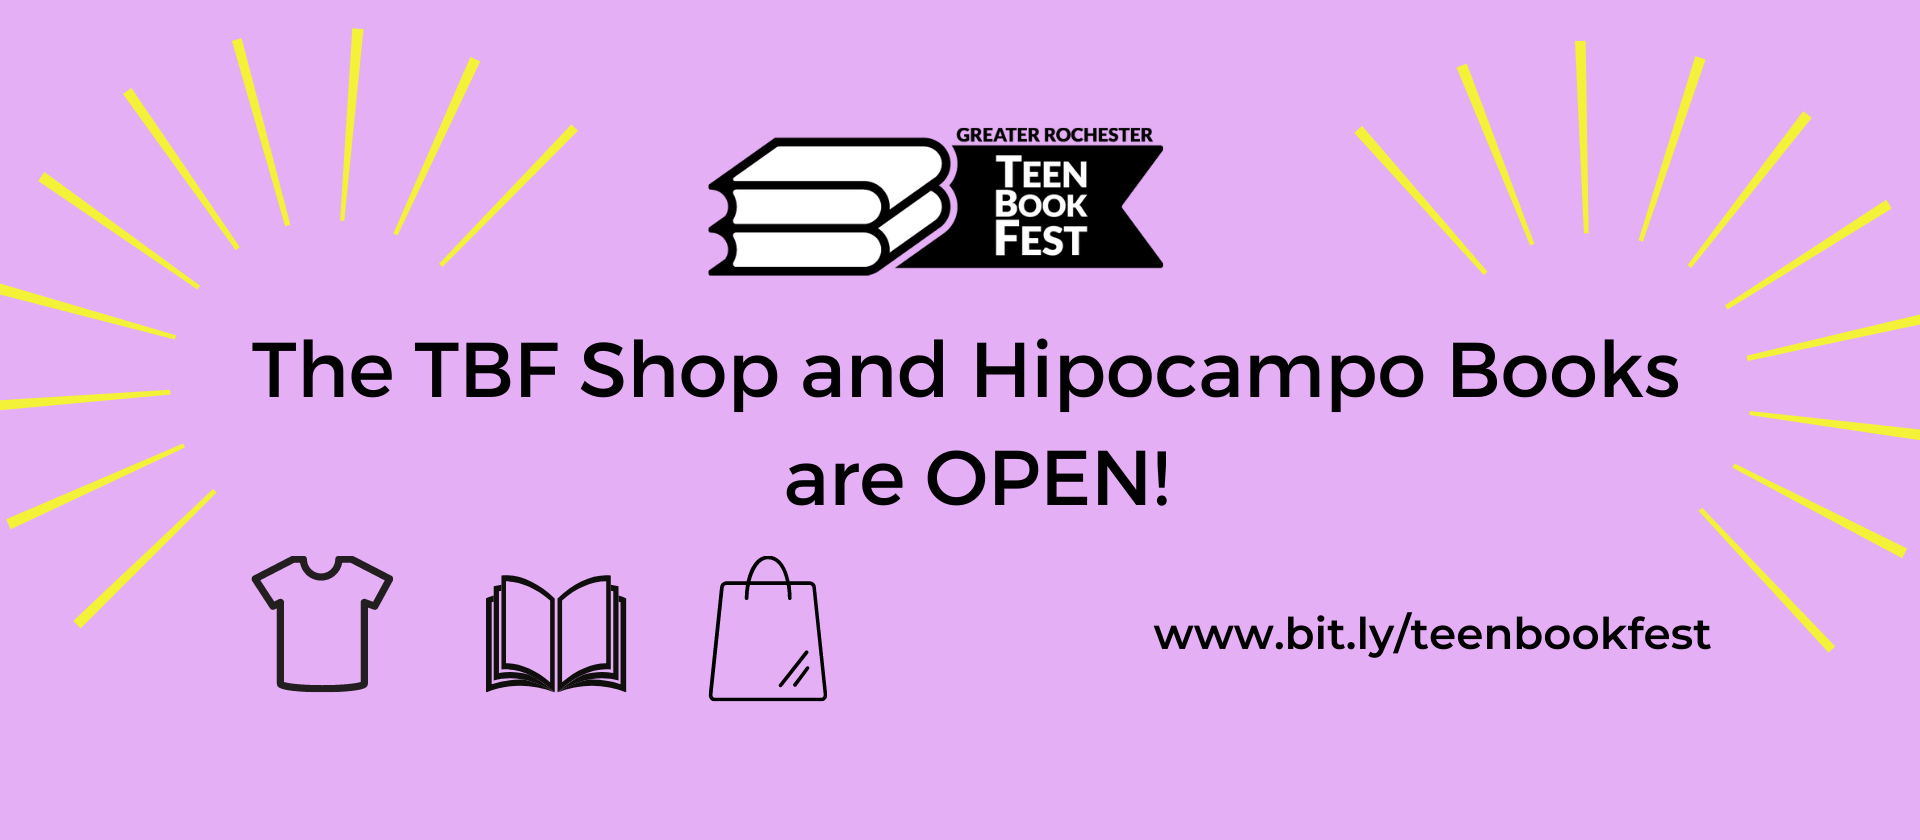 The TBF shop and Hipocampo Books are OPEN! Help Support TBF!